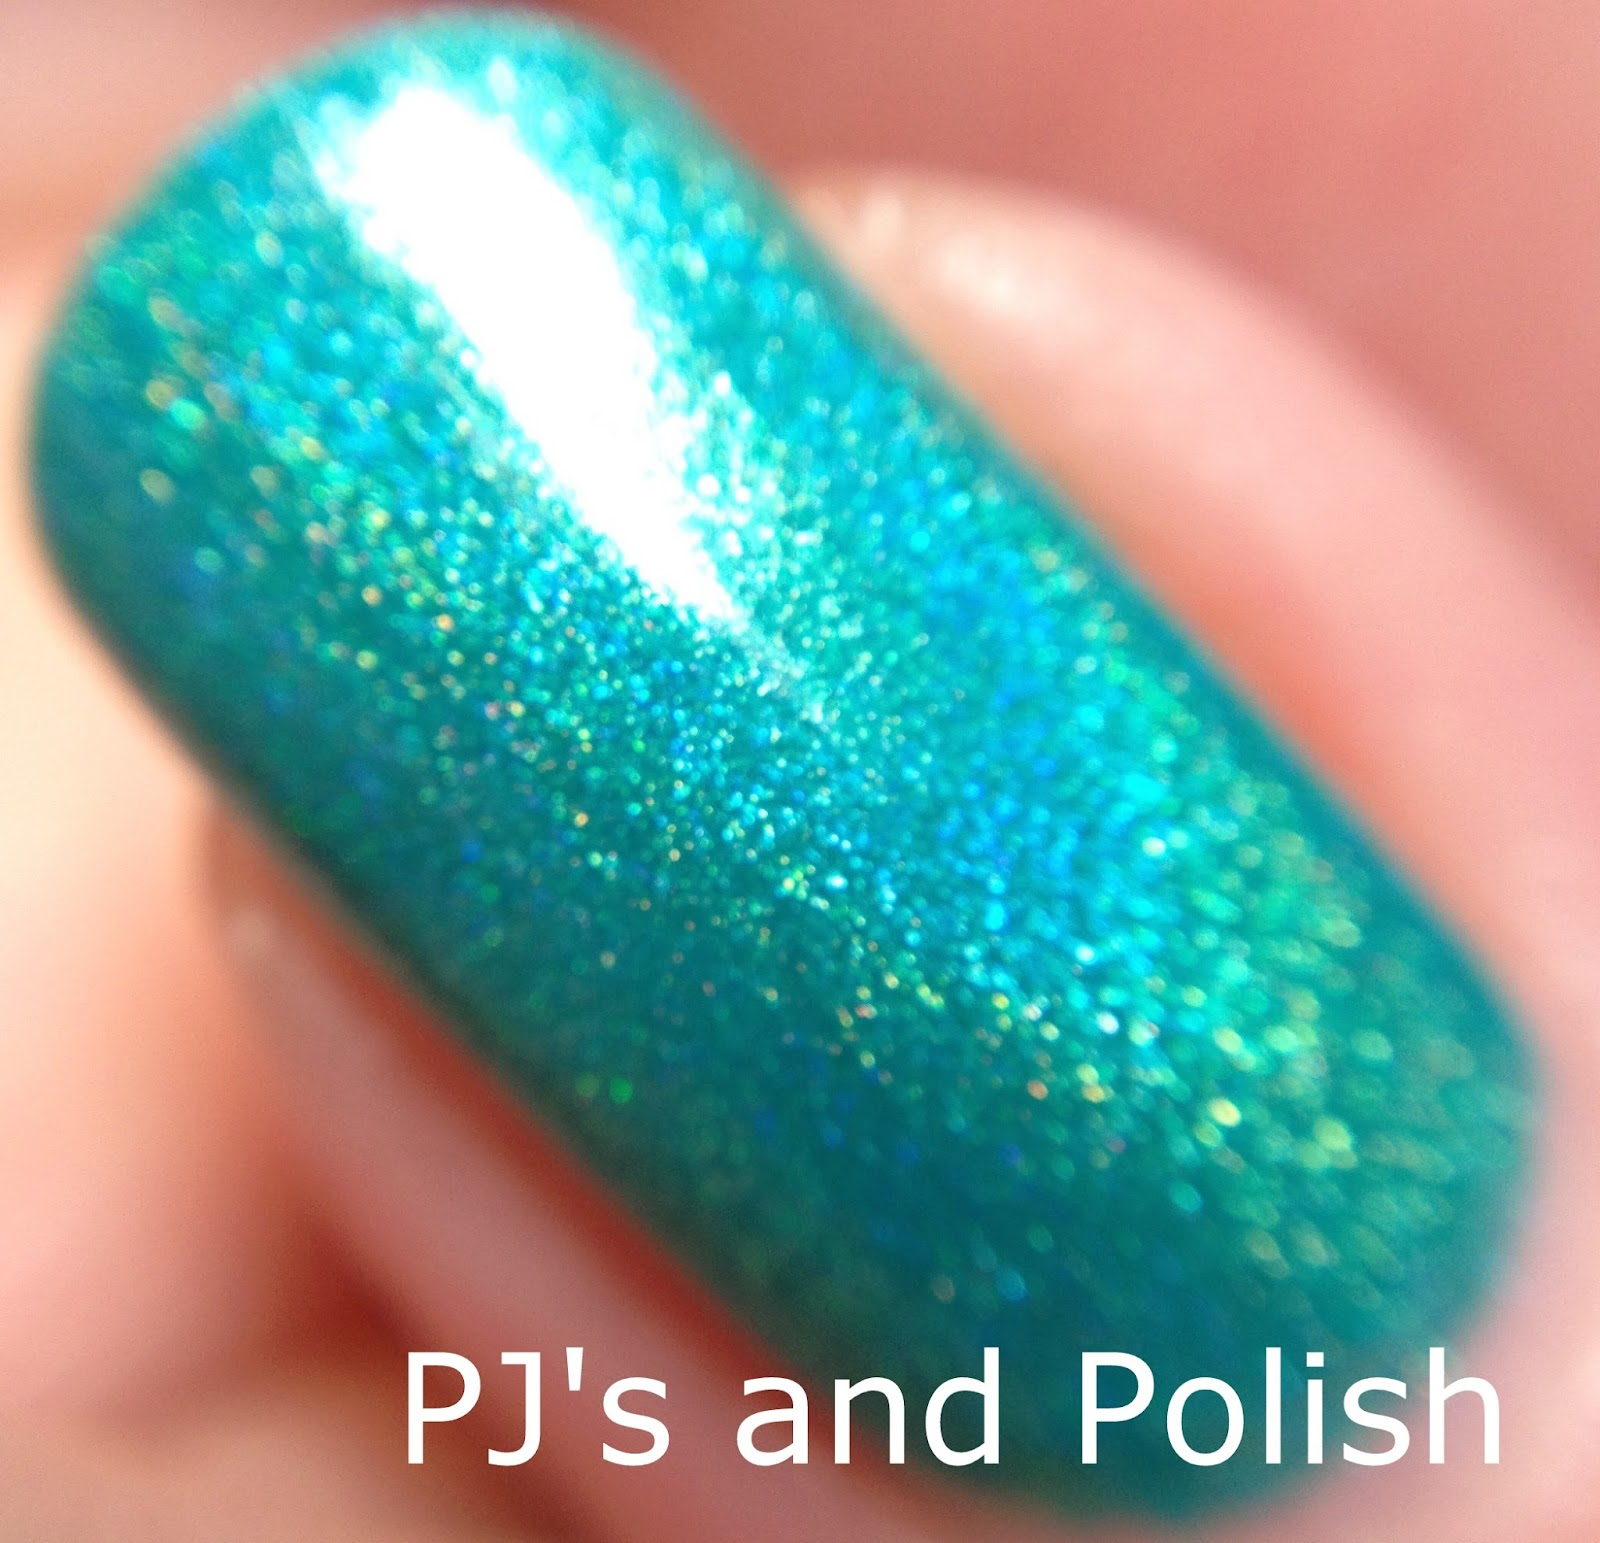 Swatch and Review Colors by Lllarowe CbL Summer 2014 Holo and Holo Glitters Gemini Rising Final Fantasy Refresh...ing! Chillin' In Paradise The Golden Touch When Doves Cry My Own Private Paradise HK Girl